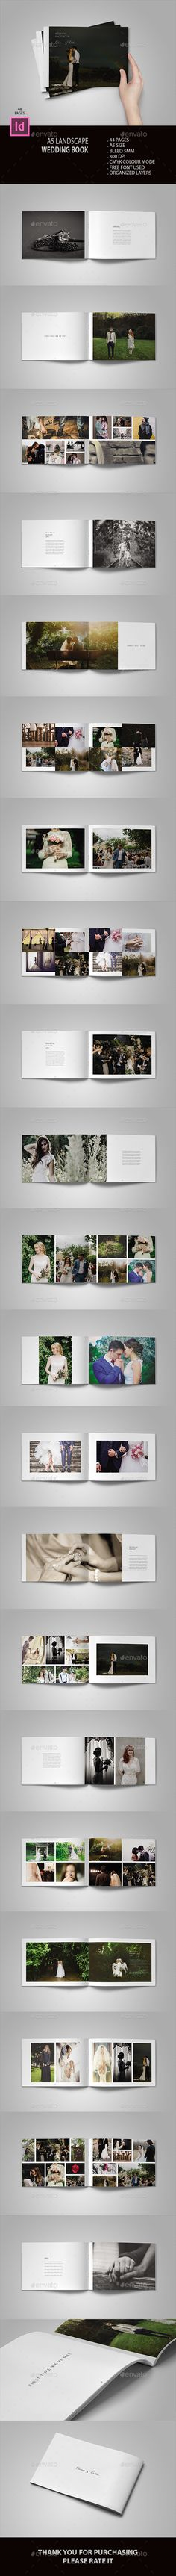 523 Best Photo Album Template Images On Pinterest In 2018 Best